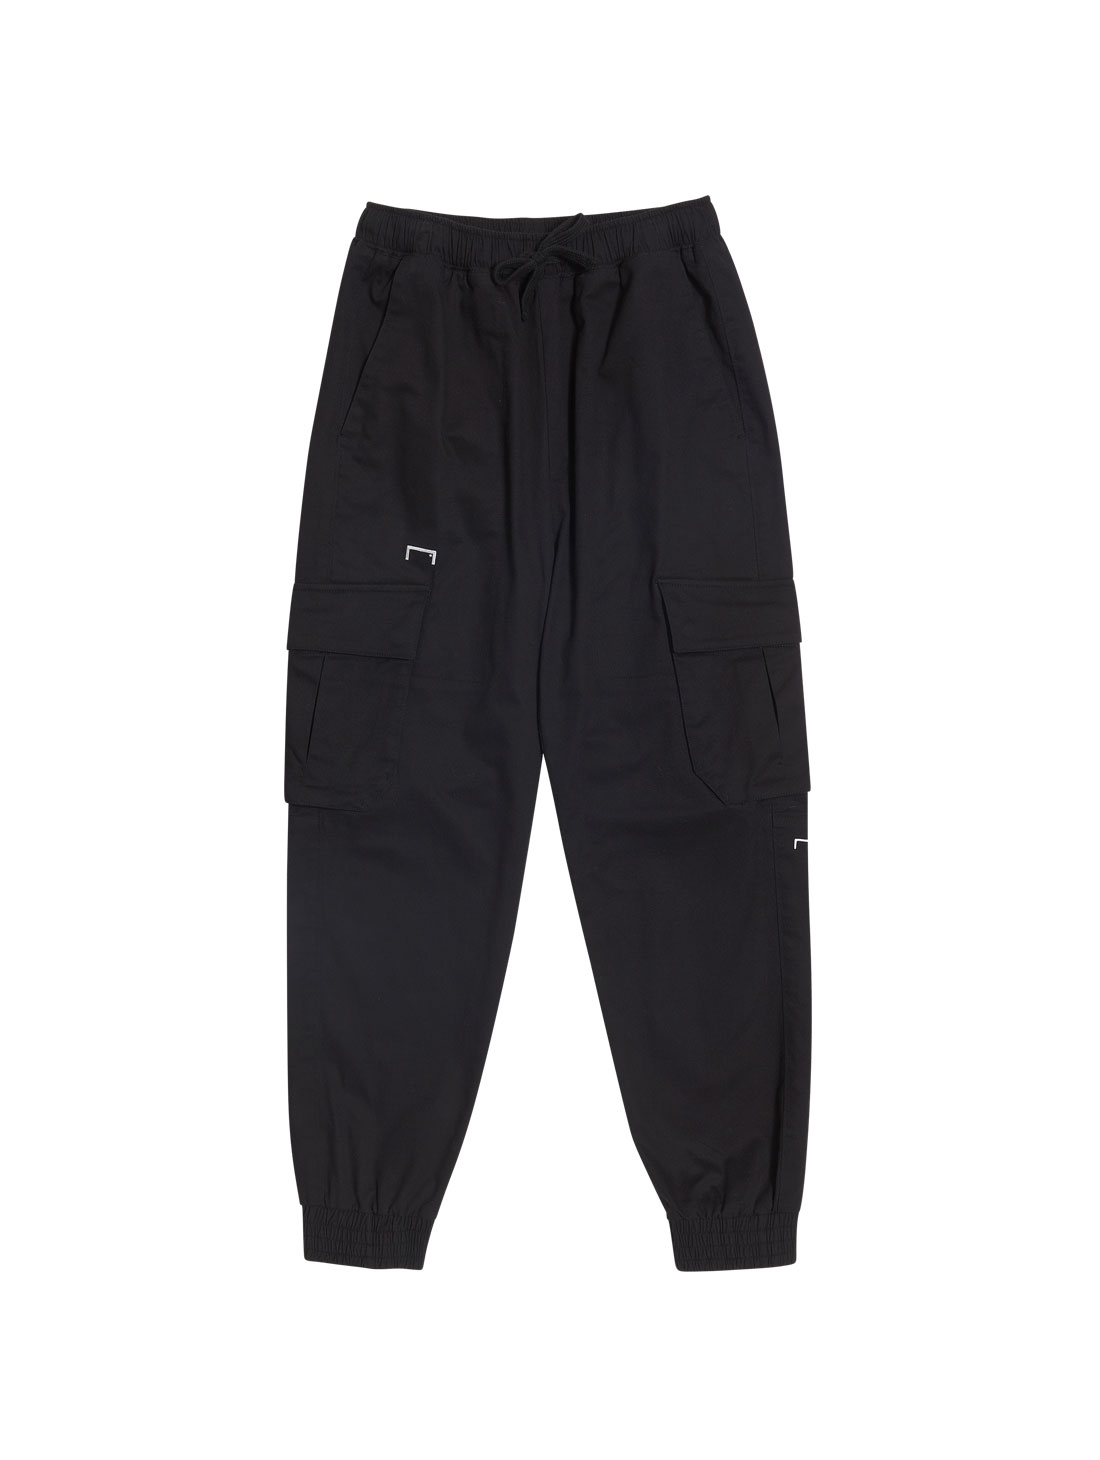 GOALSTUDIO CARGO JOGGER PANTS - BLACK